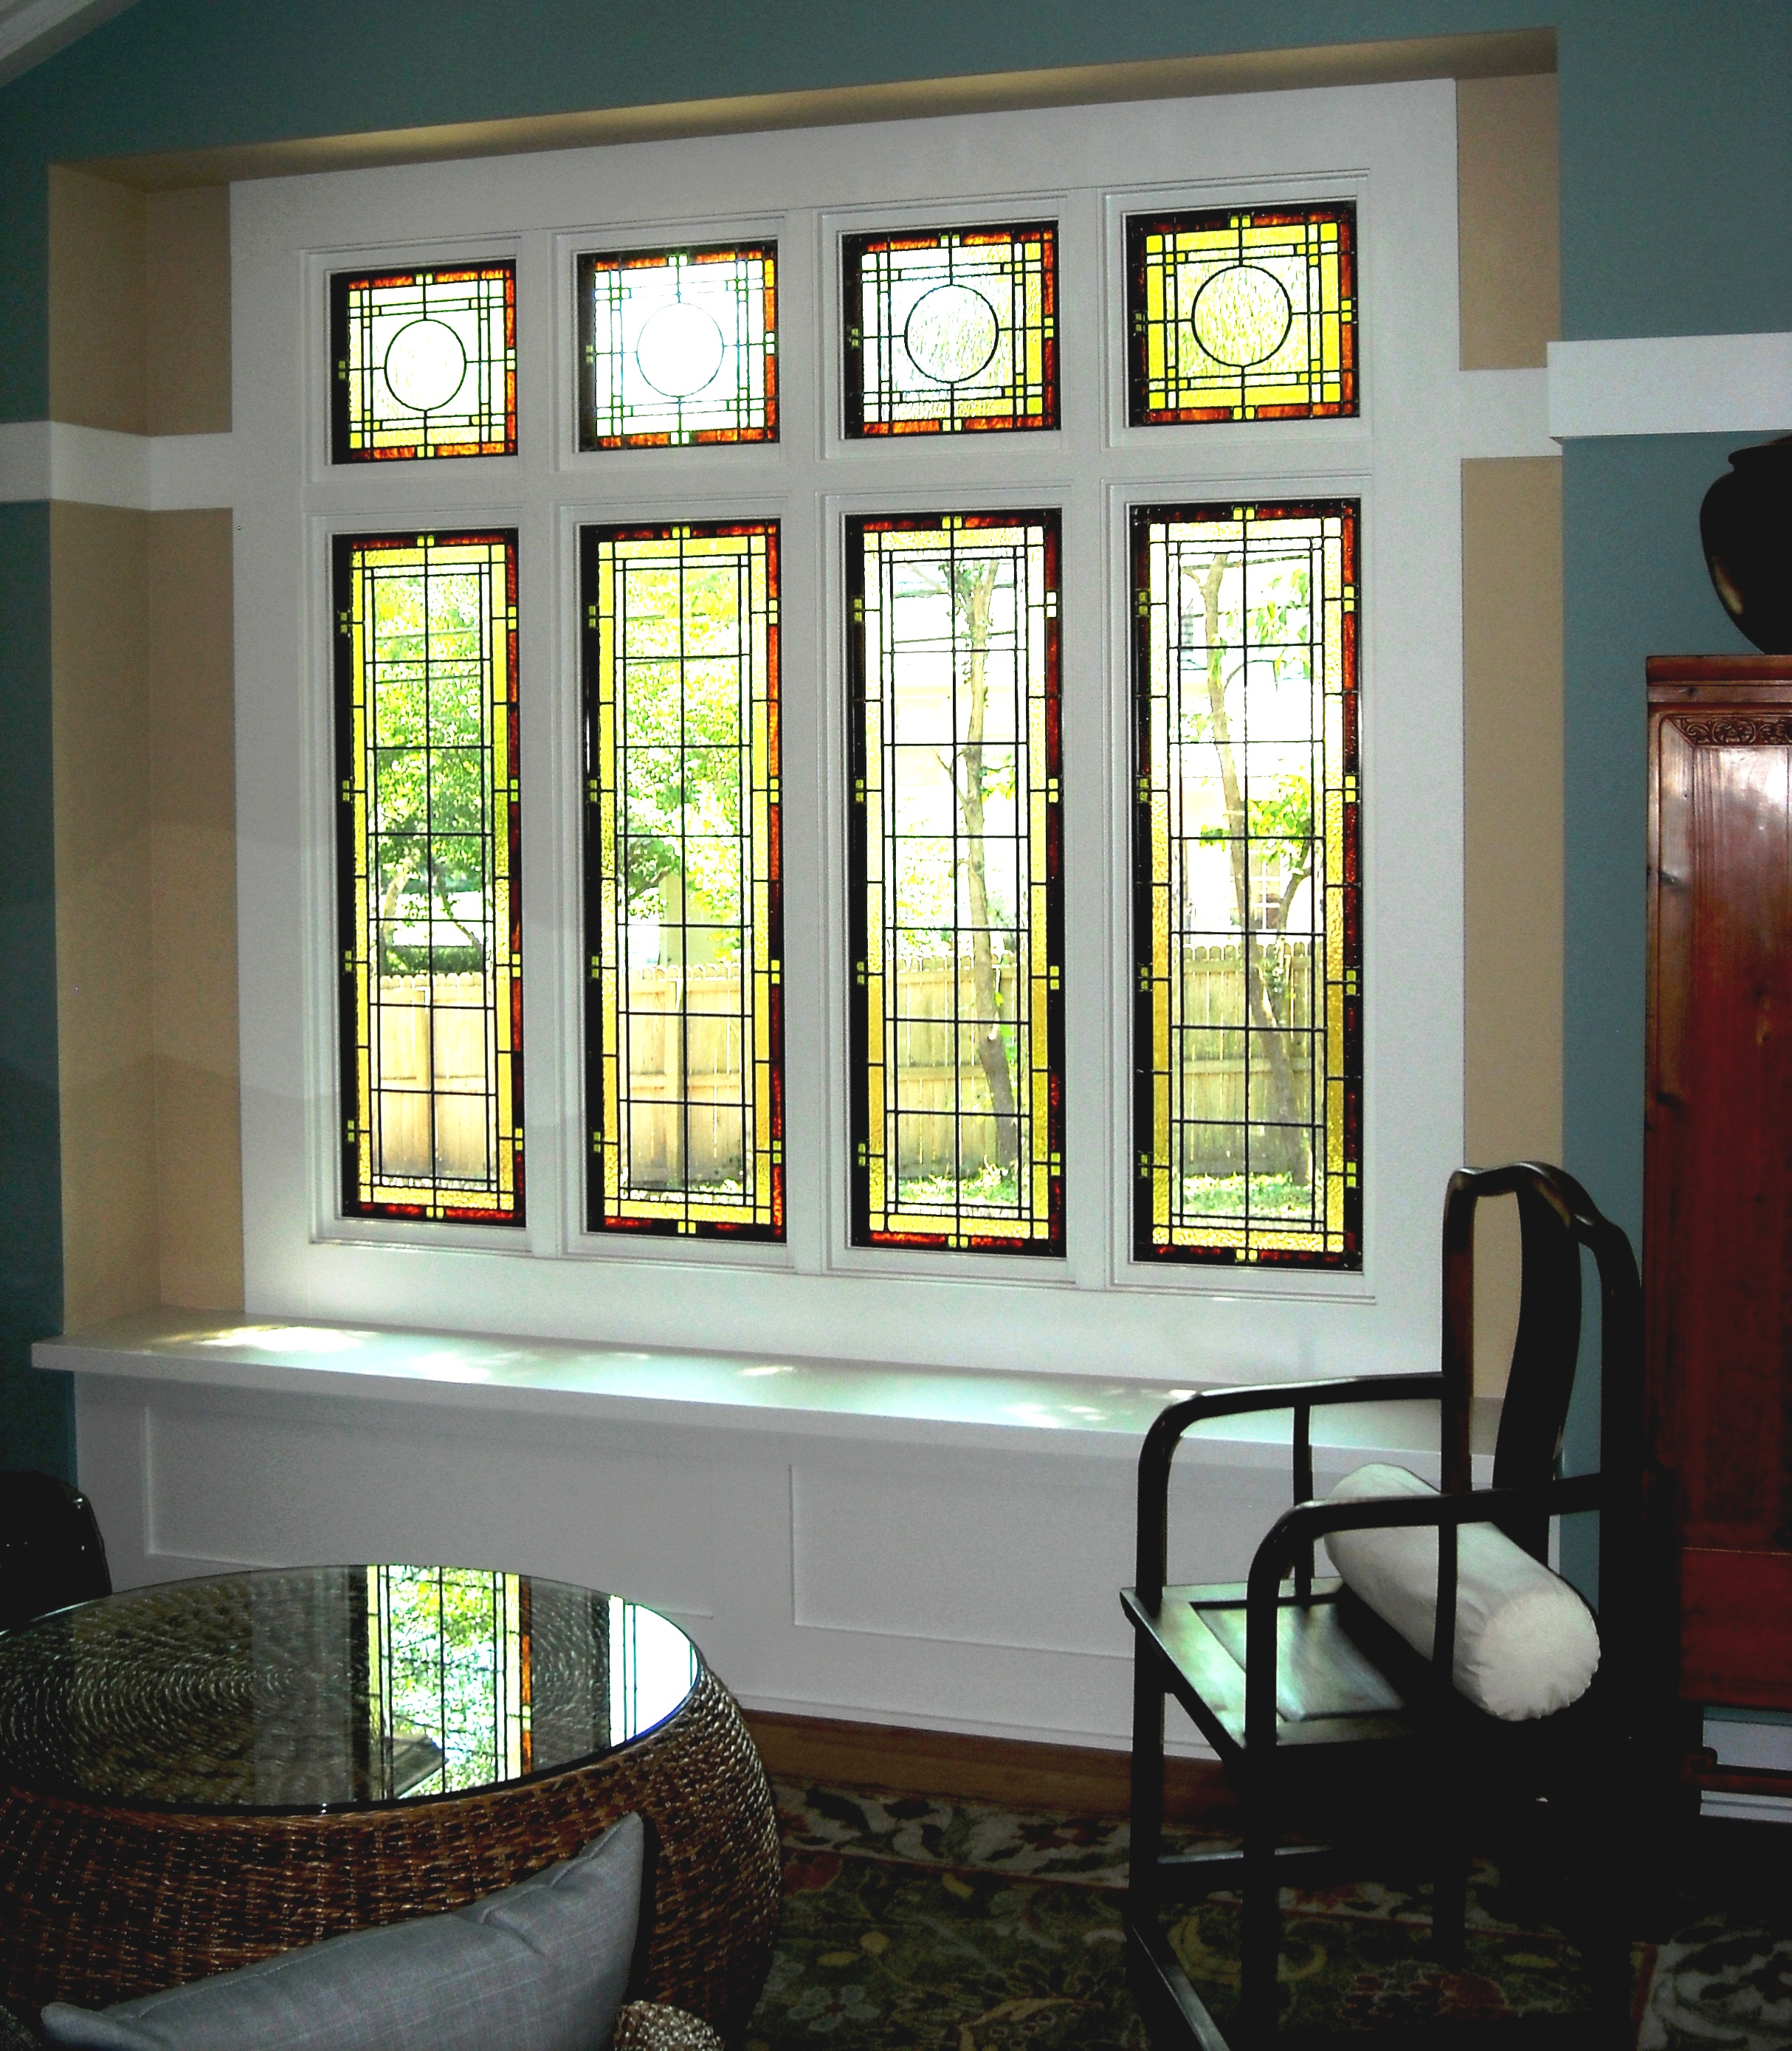 Advantages and disadvantages of stained glass windows for Custom design windows